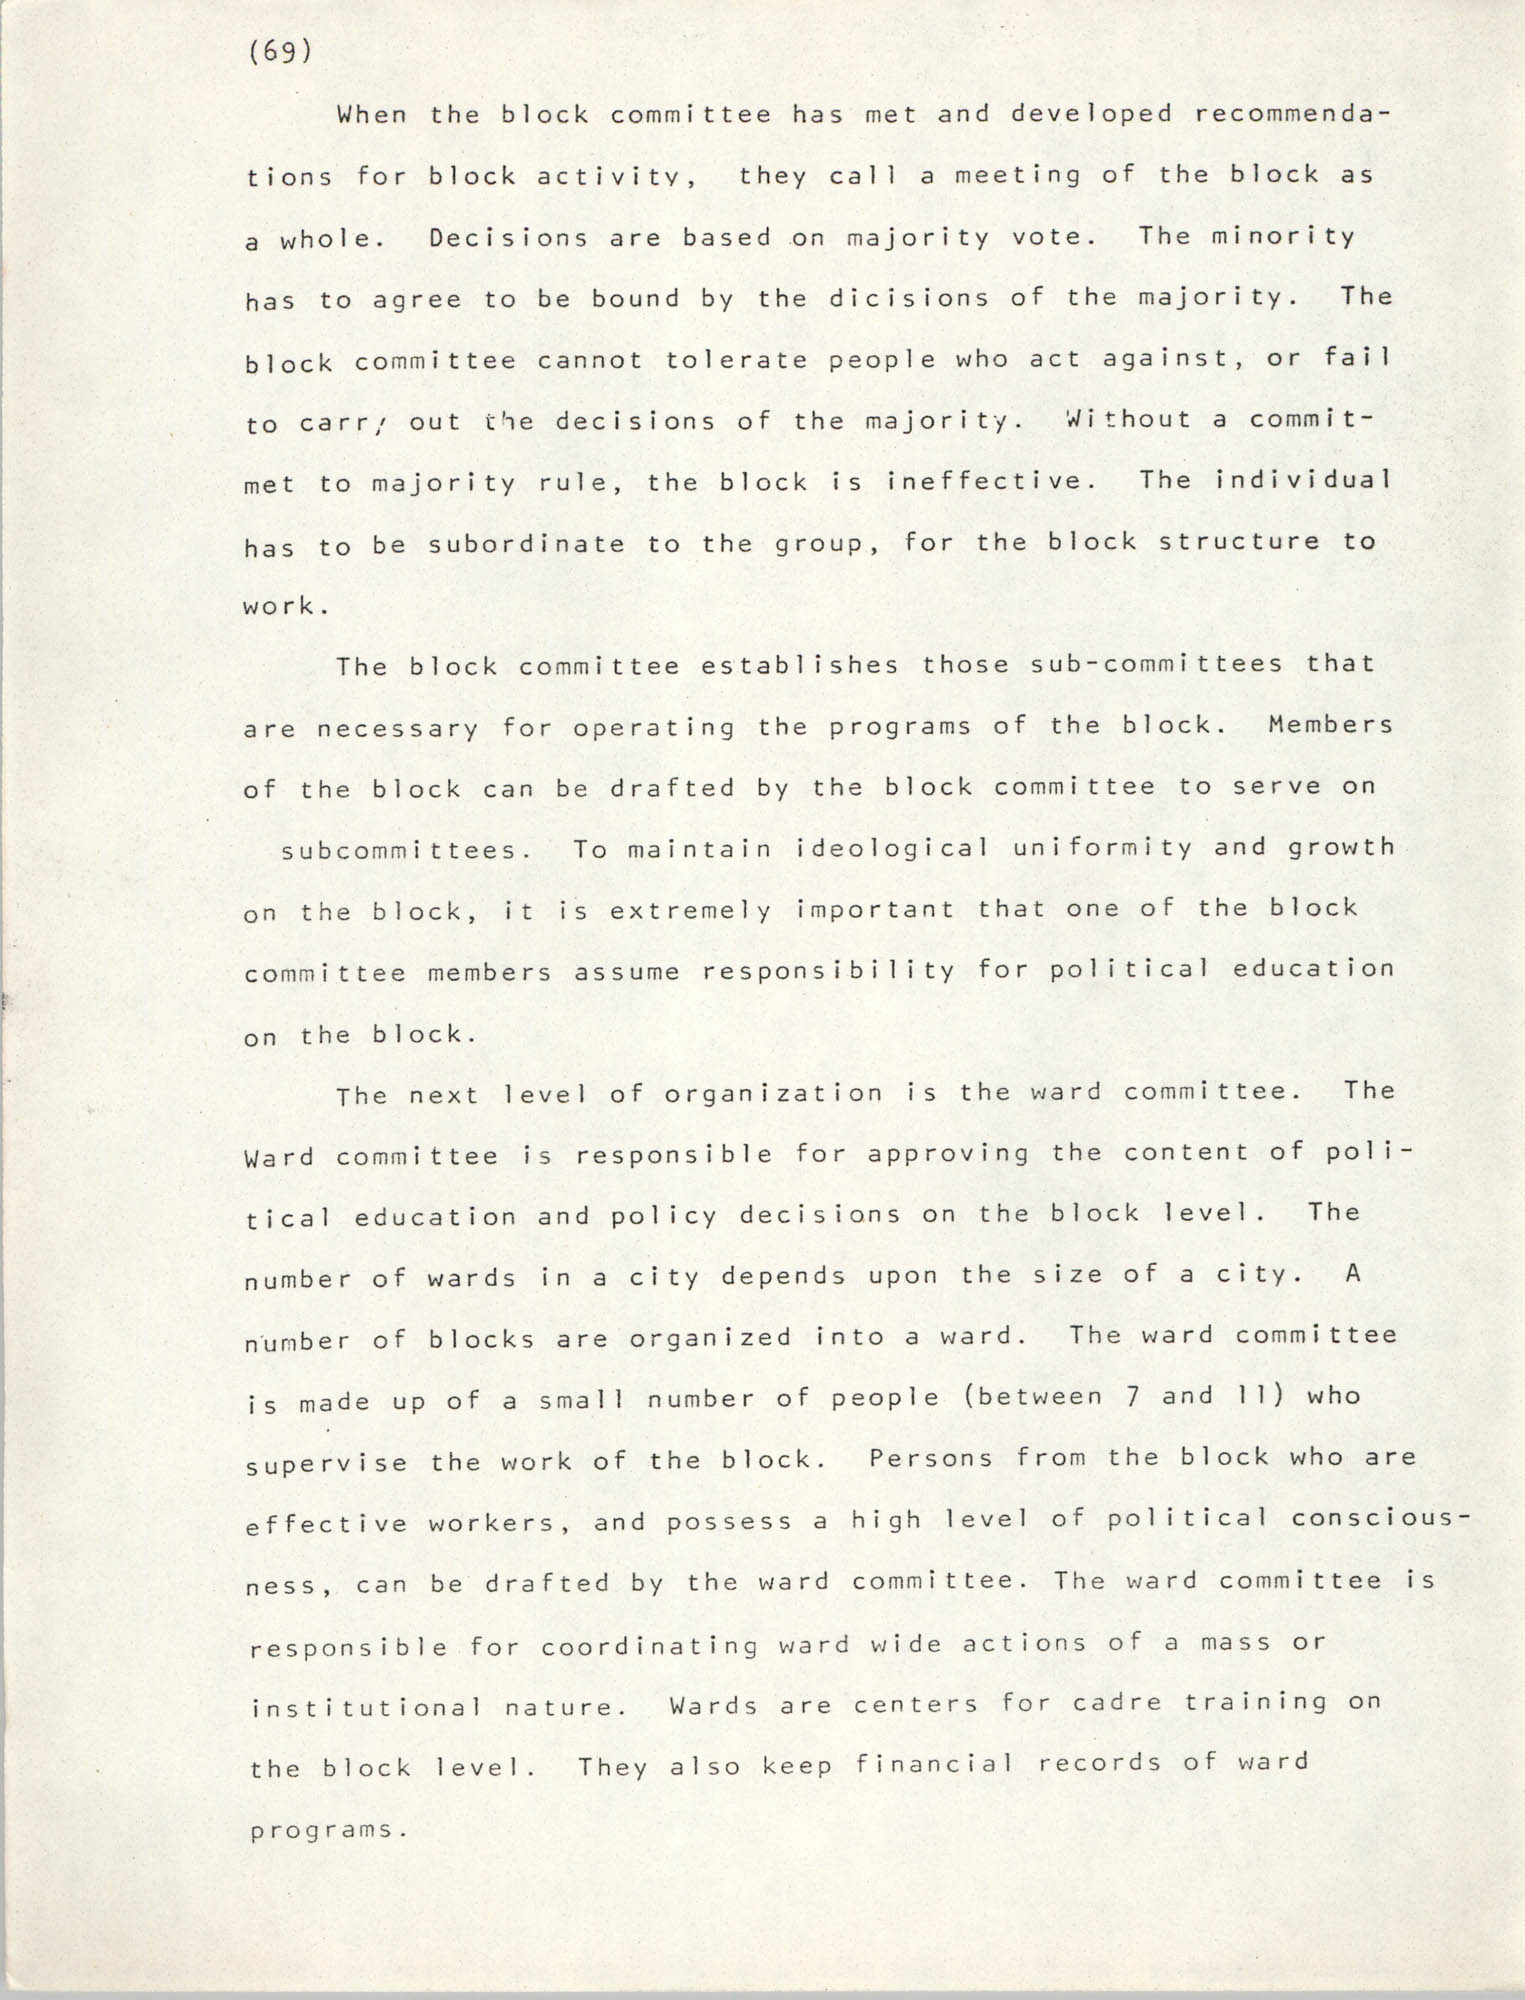 Pan-African Committee of the Black United Front, Page 69